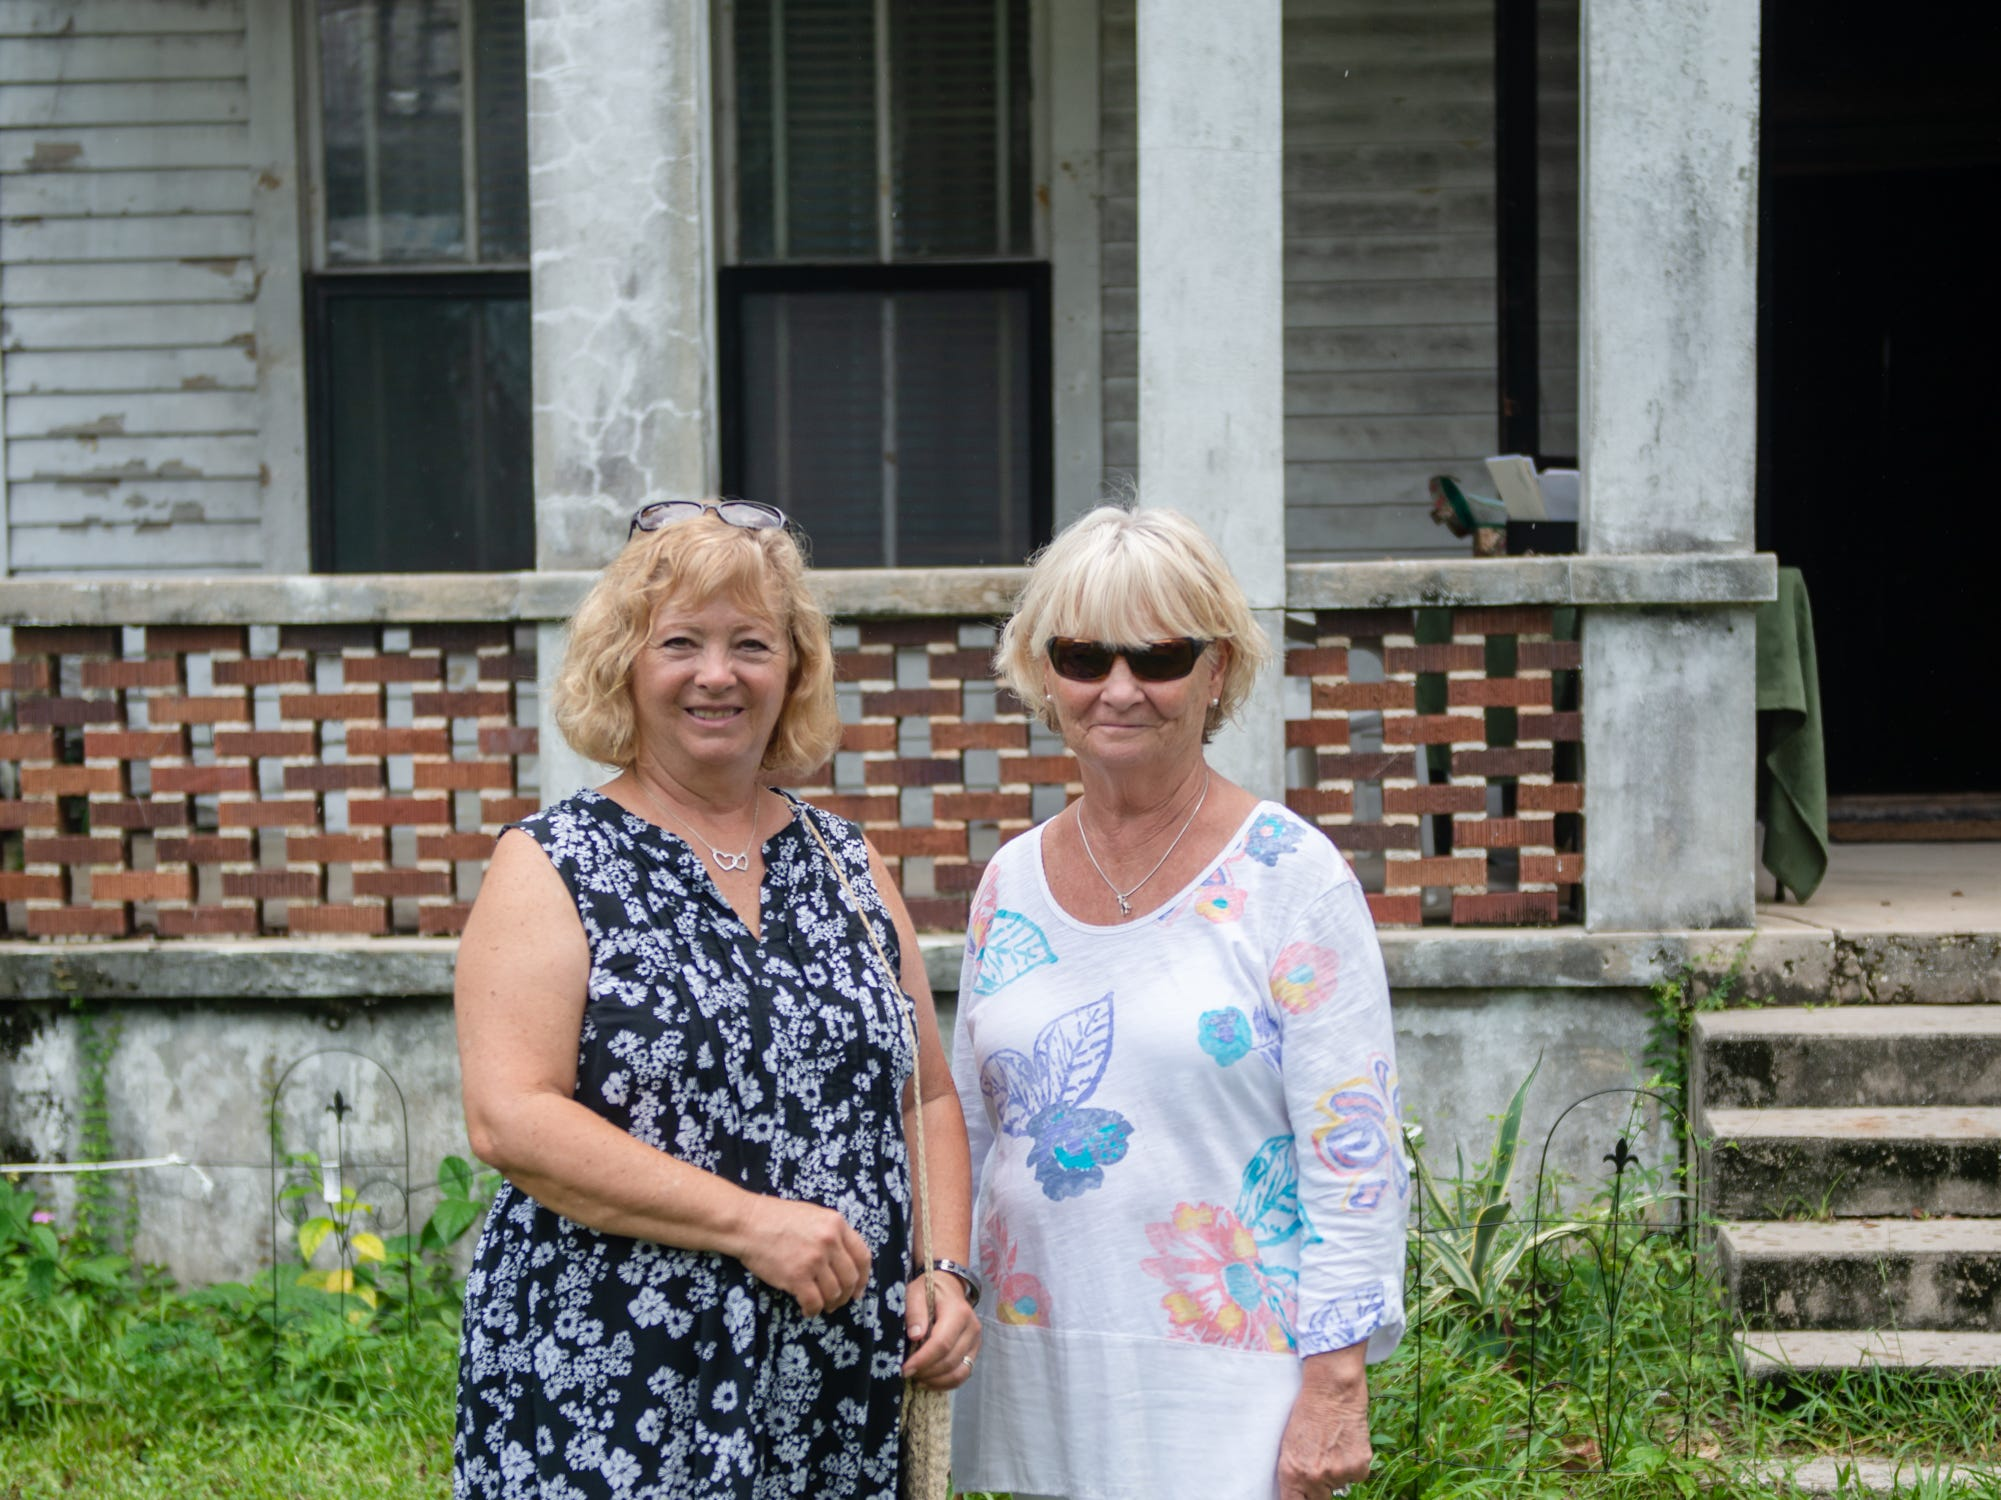 Jana Gallagher and Lorraine Fiore at the Christmas in July event, which raised money to restore the Green Gables Victorian house in Melbourne.